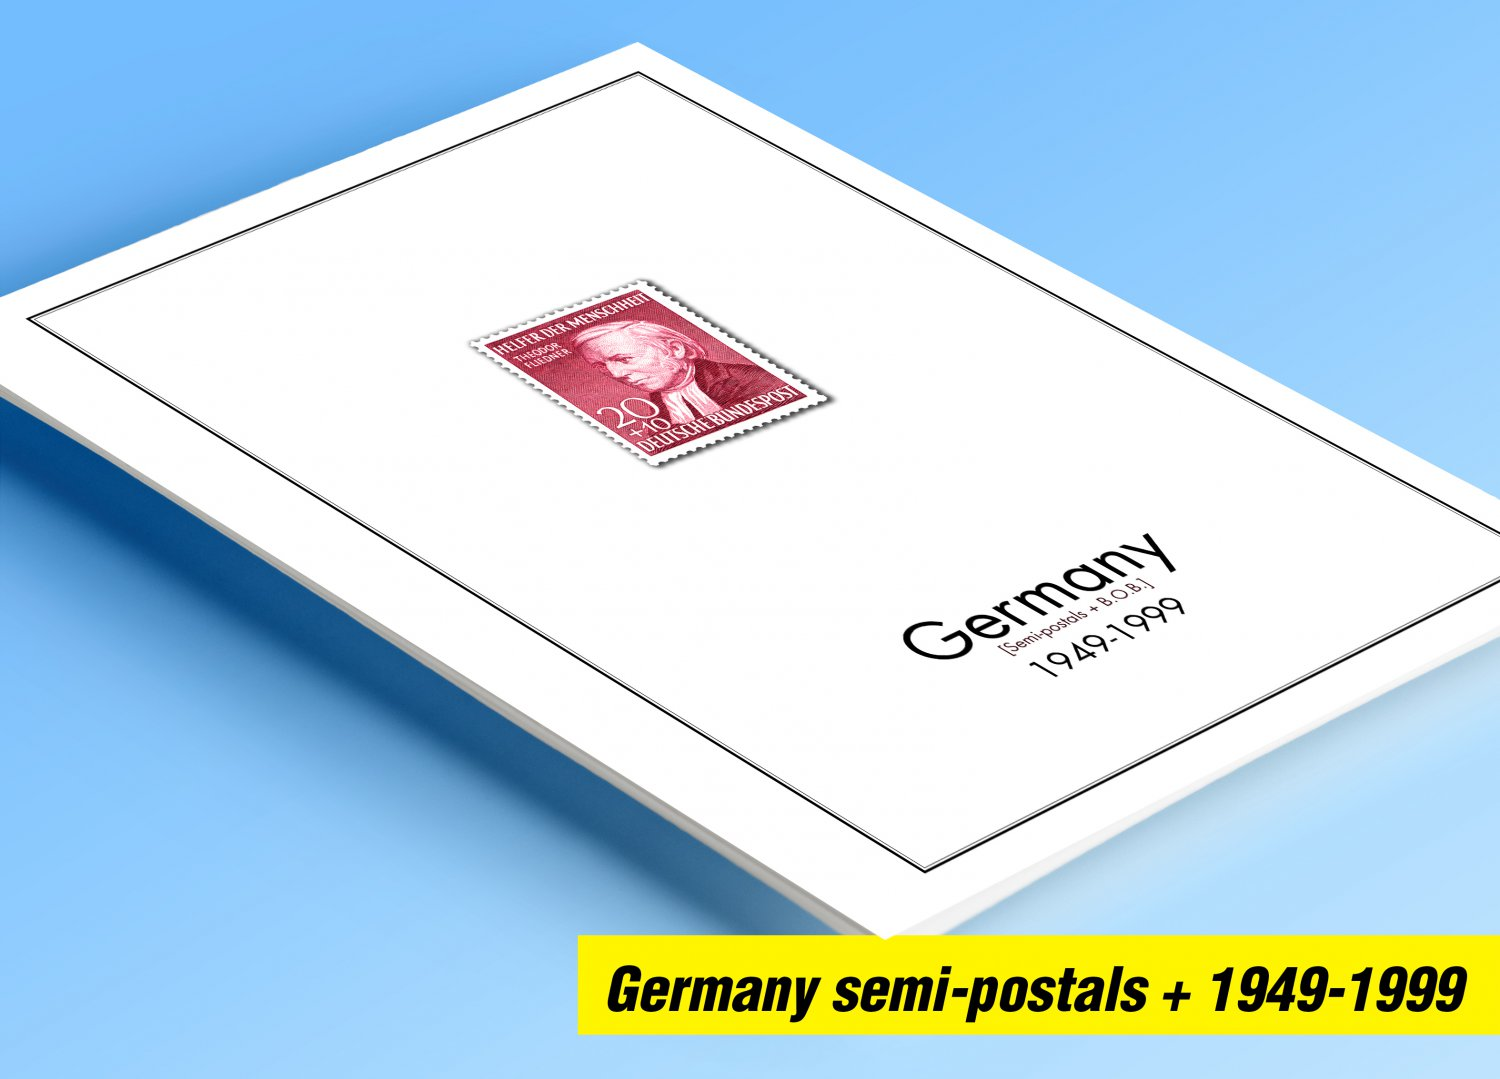 COLOR PRINTED GERMANY SEMI-POSTALS + 1949-1999 STAMP ALBUM PAGES (66-illustrated pages)